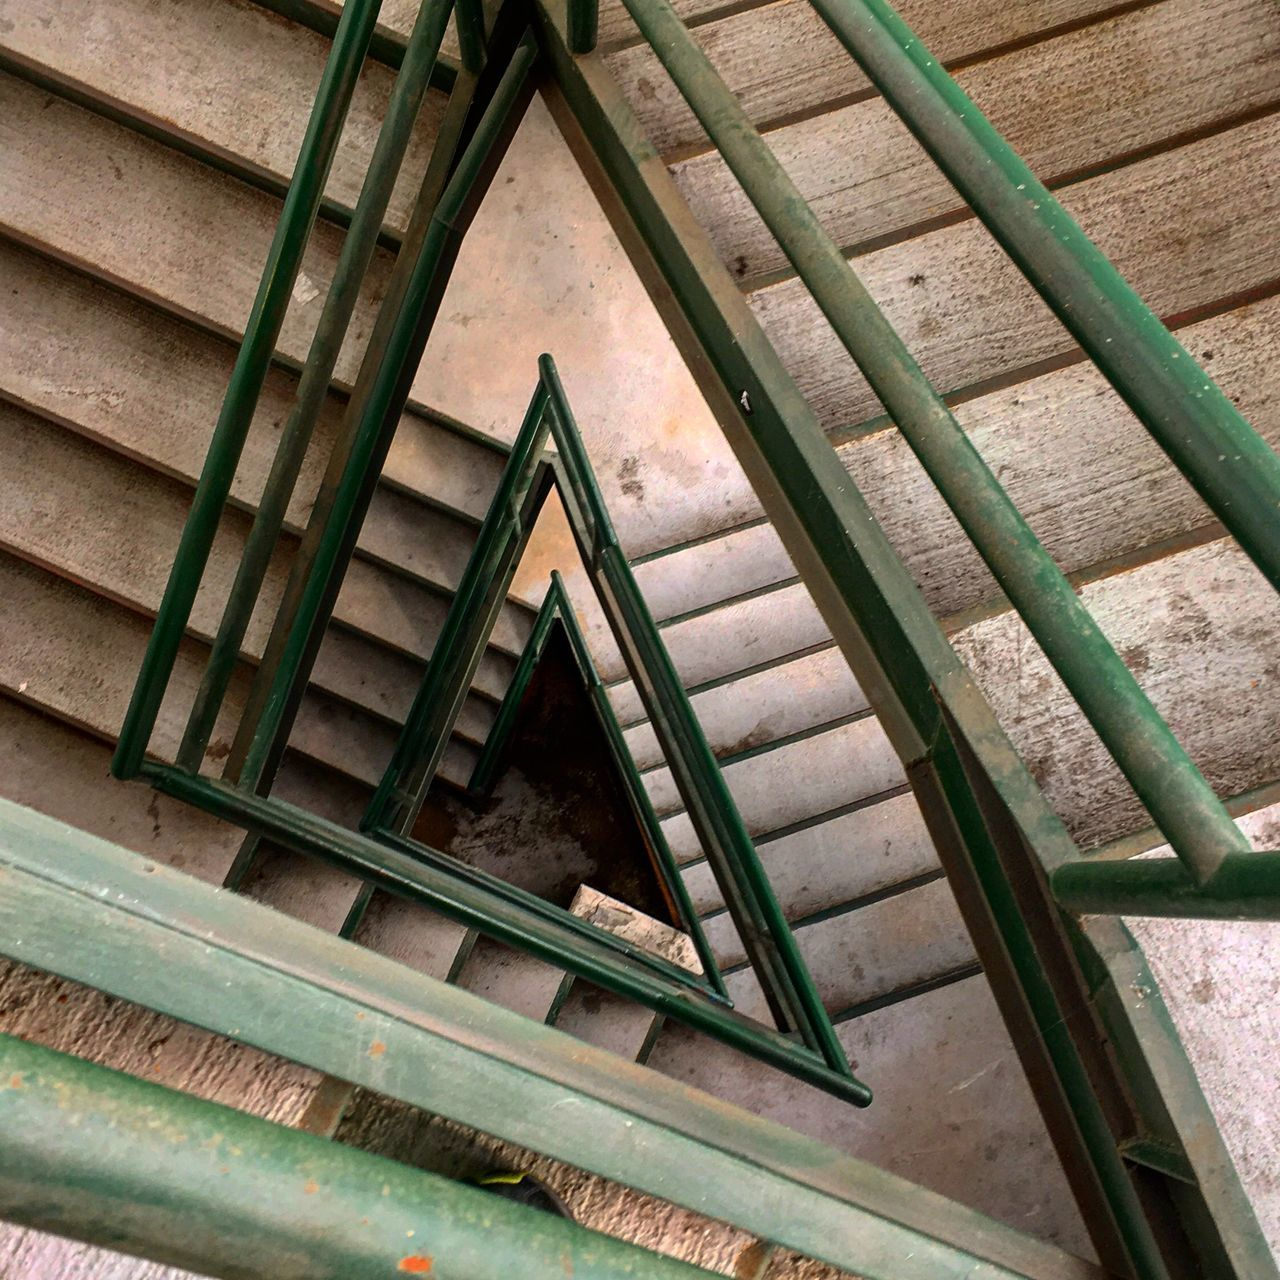 staircase, steps, steps and staircases, railing, architecture, stairs, built structure, high angle view, spiral, wood - material, hand rail, stairway, spiral staircase, no people, day, climbing, indoors